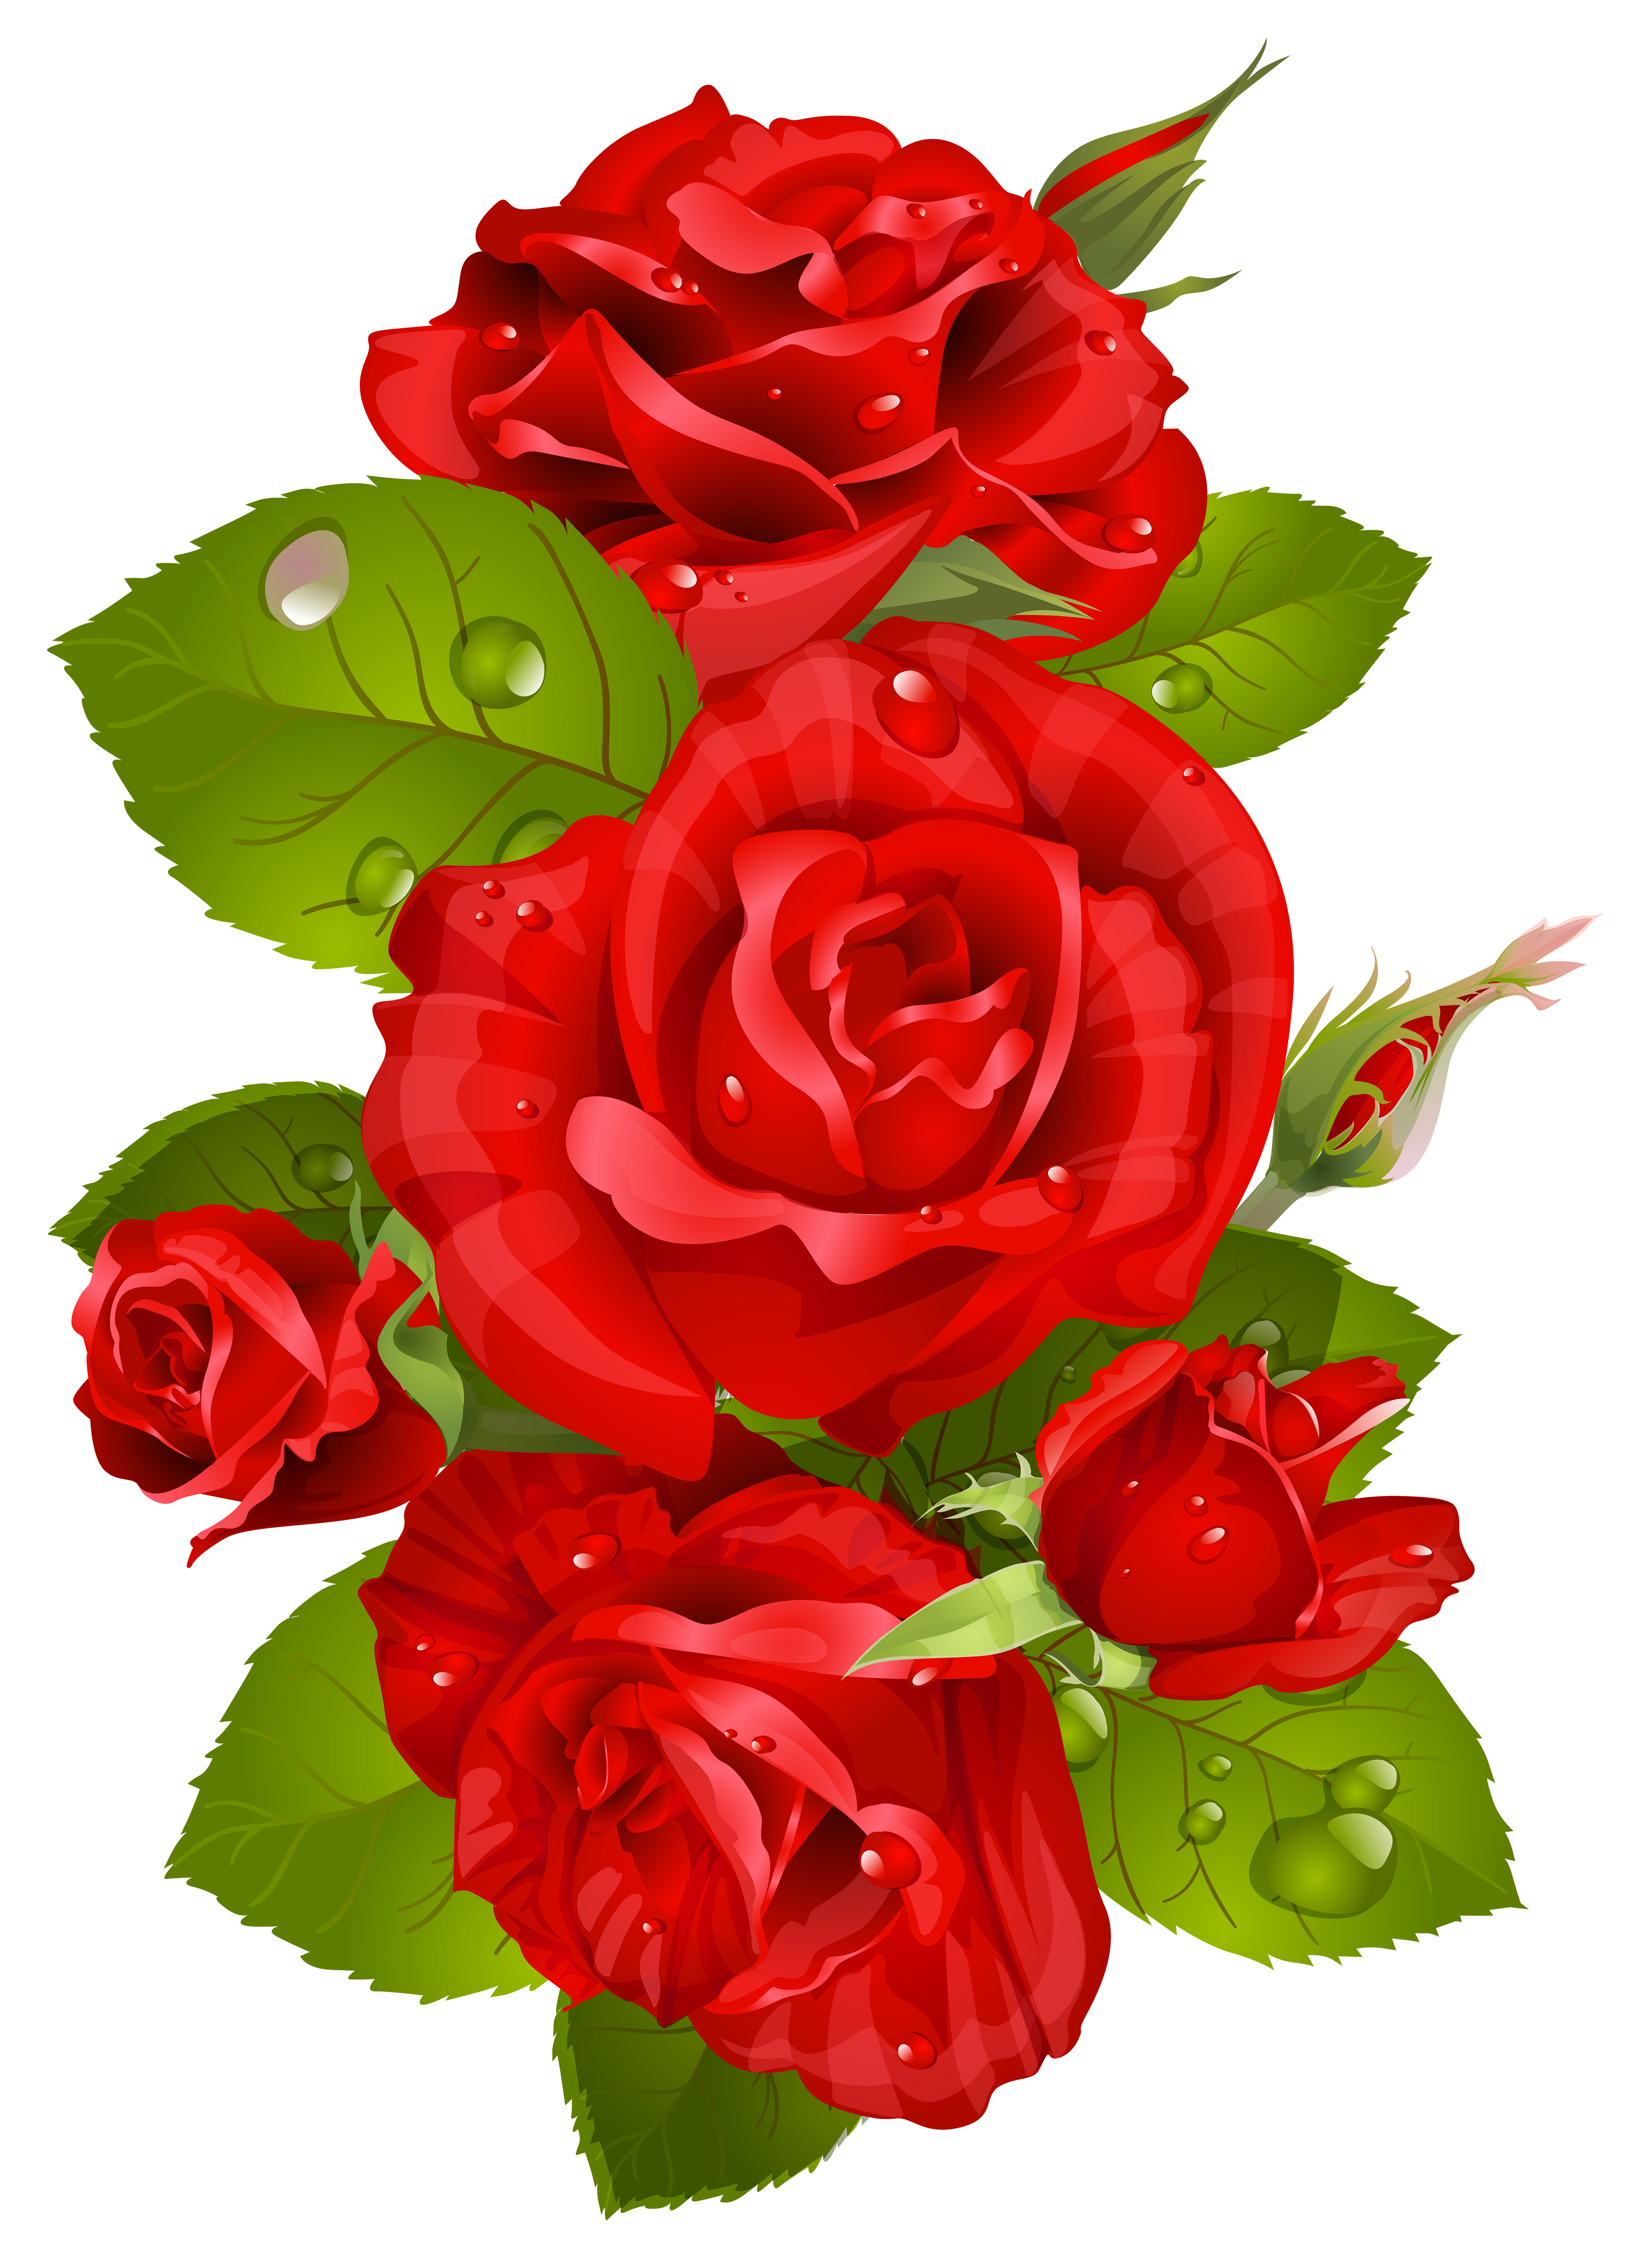 Red Rose clipart decorative #10